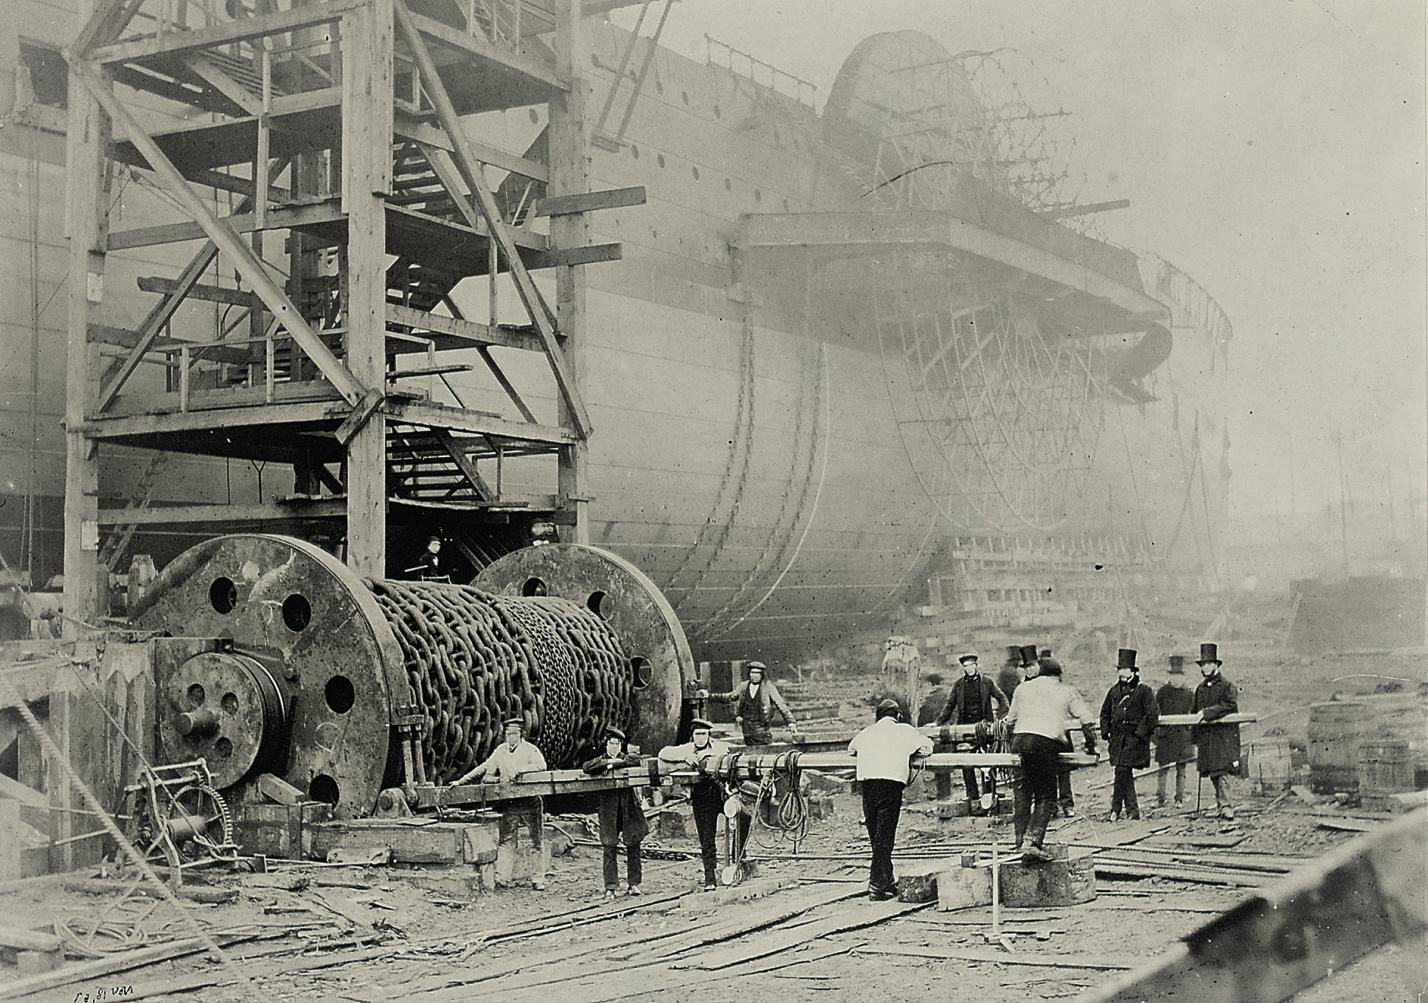 Construction of The Great Eastern, Millwall